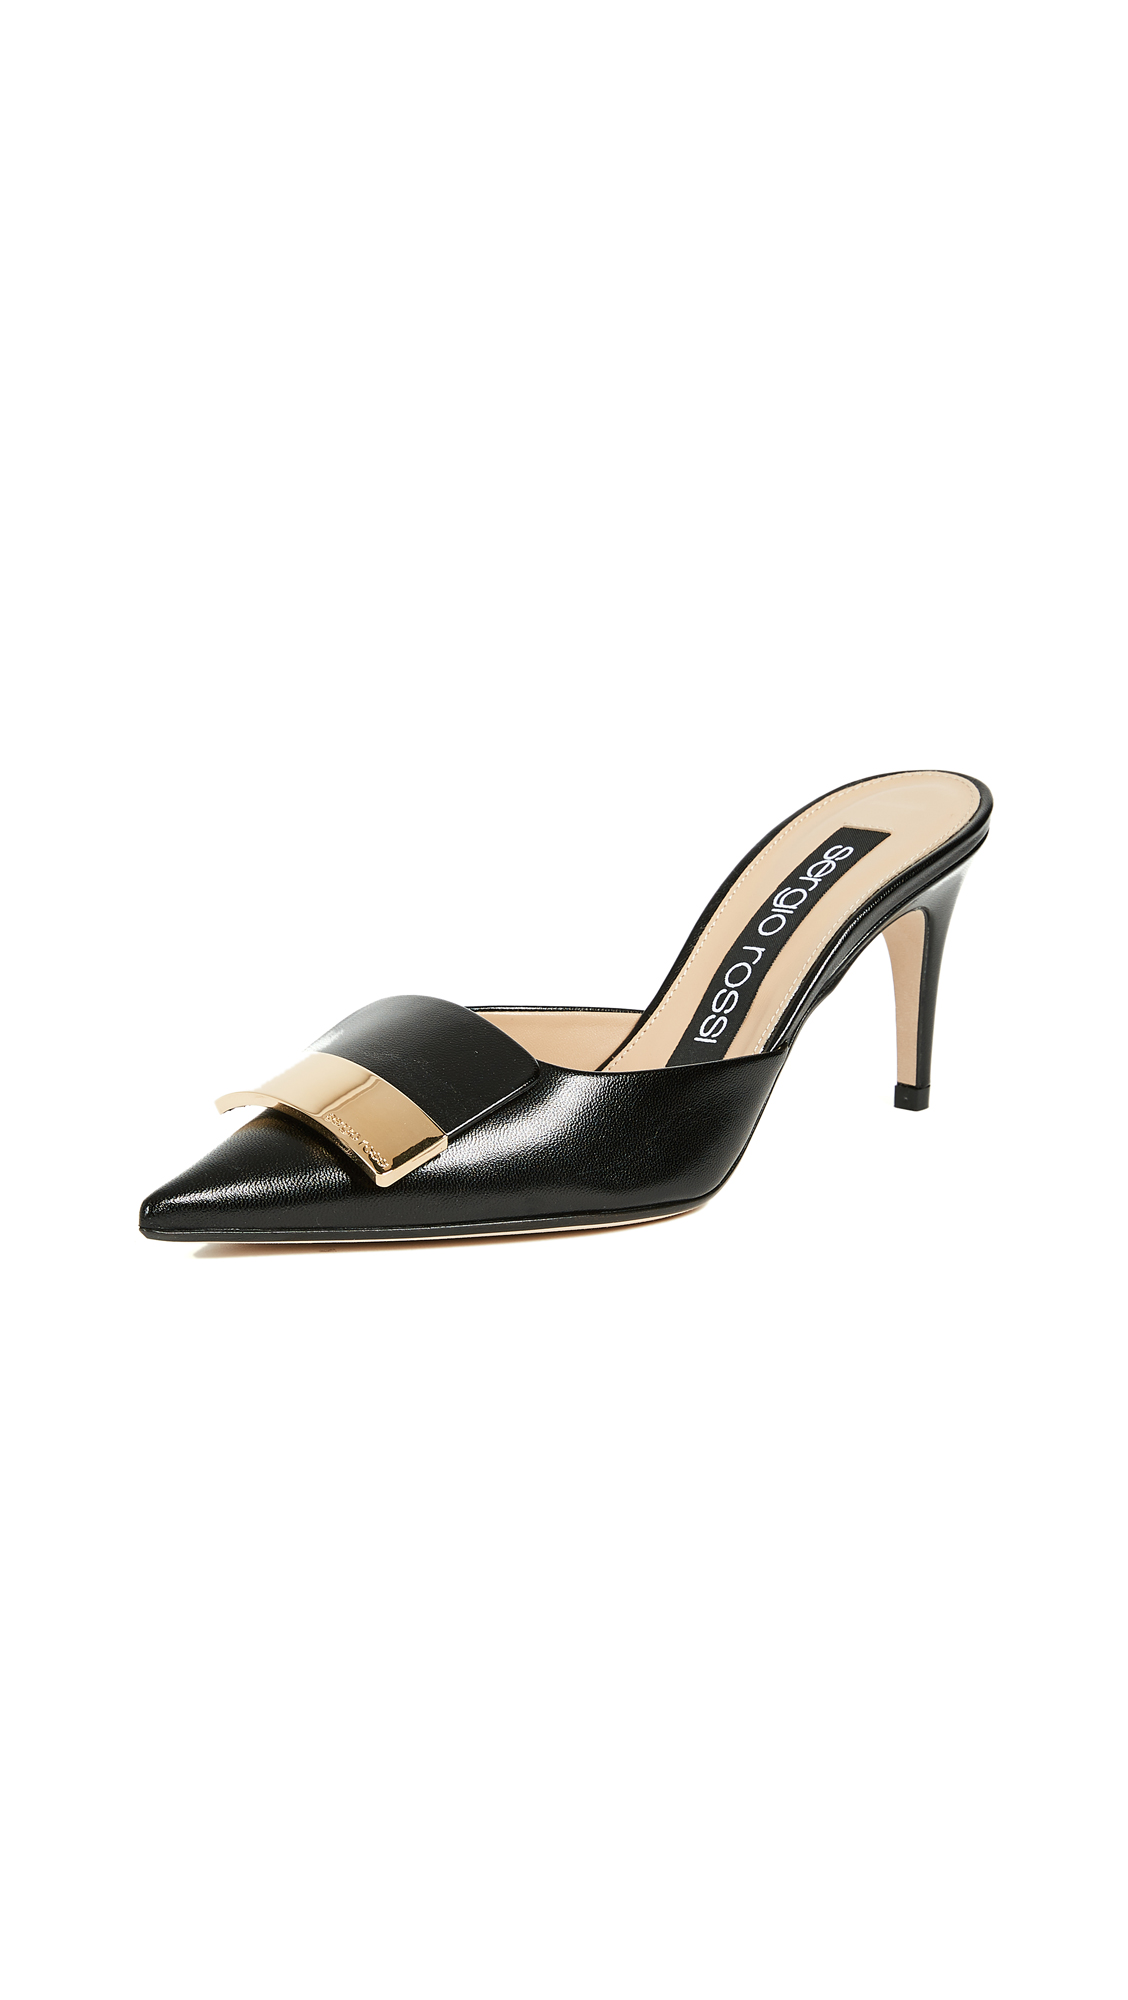 Sergio Rossi Cindy Mule Pumps - Black